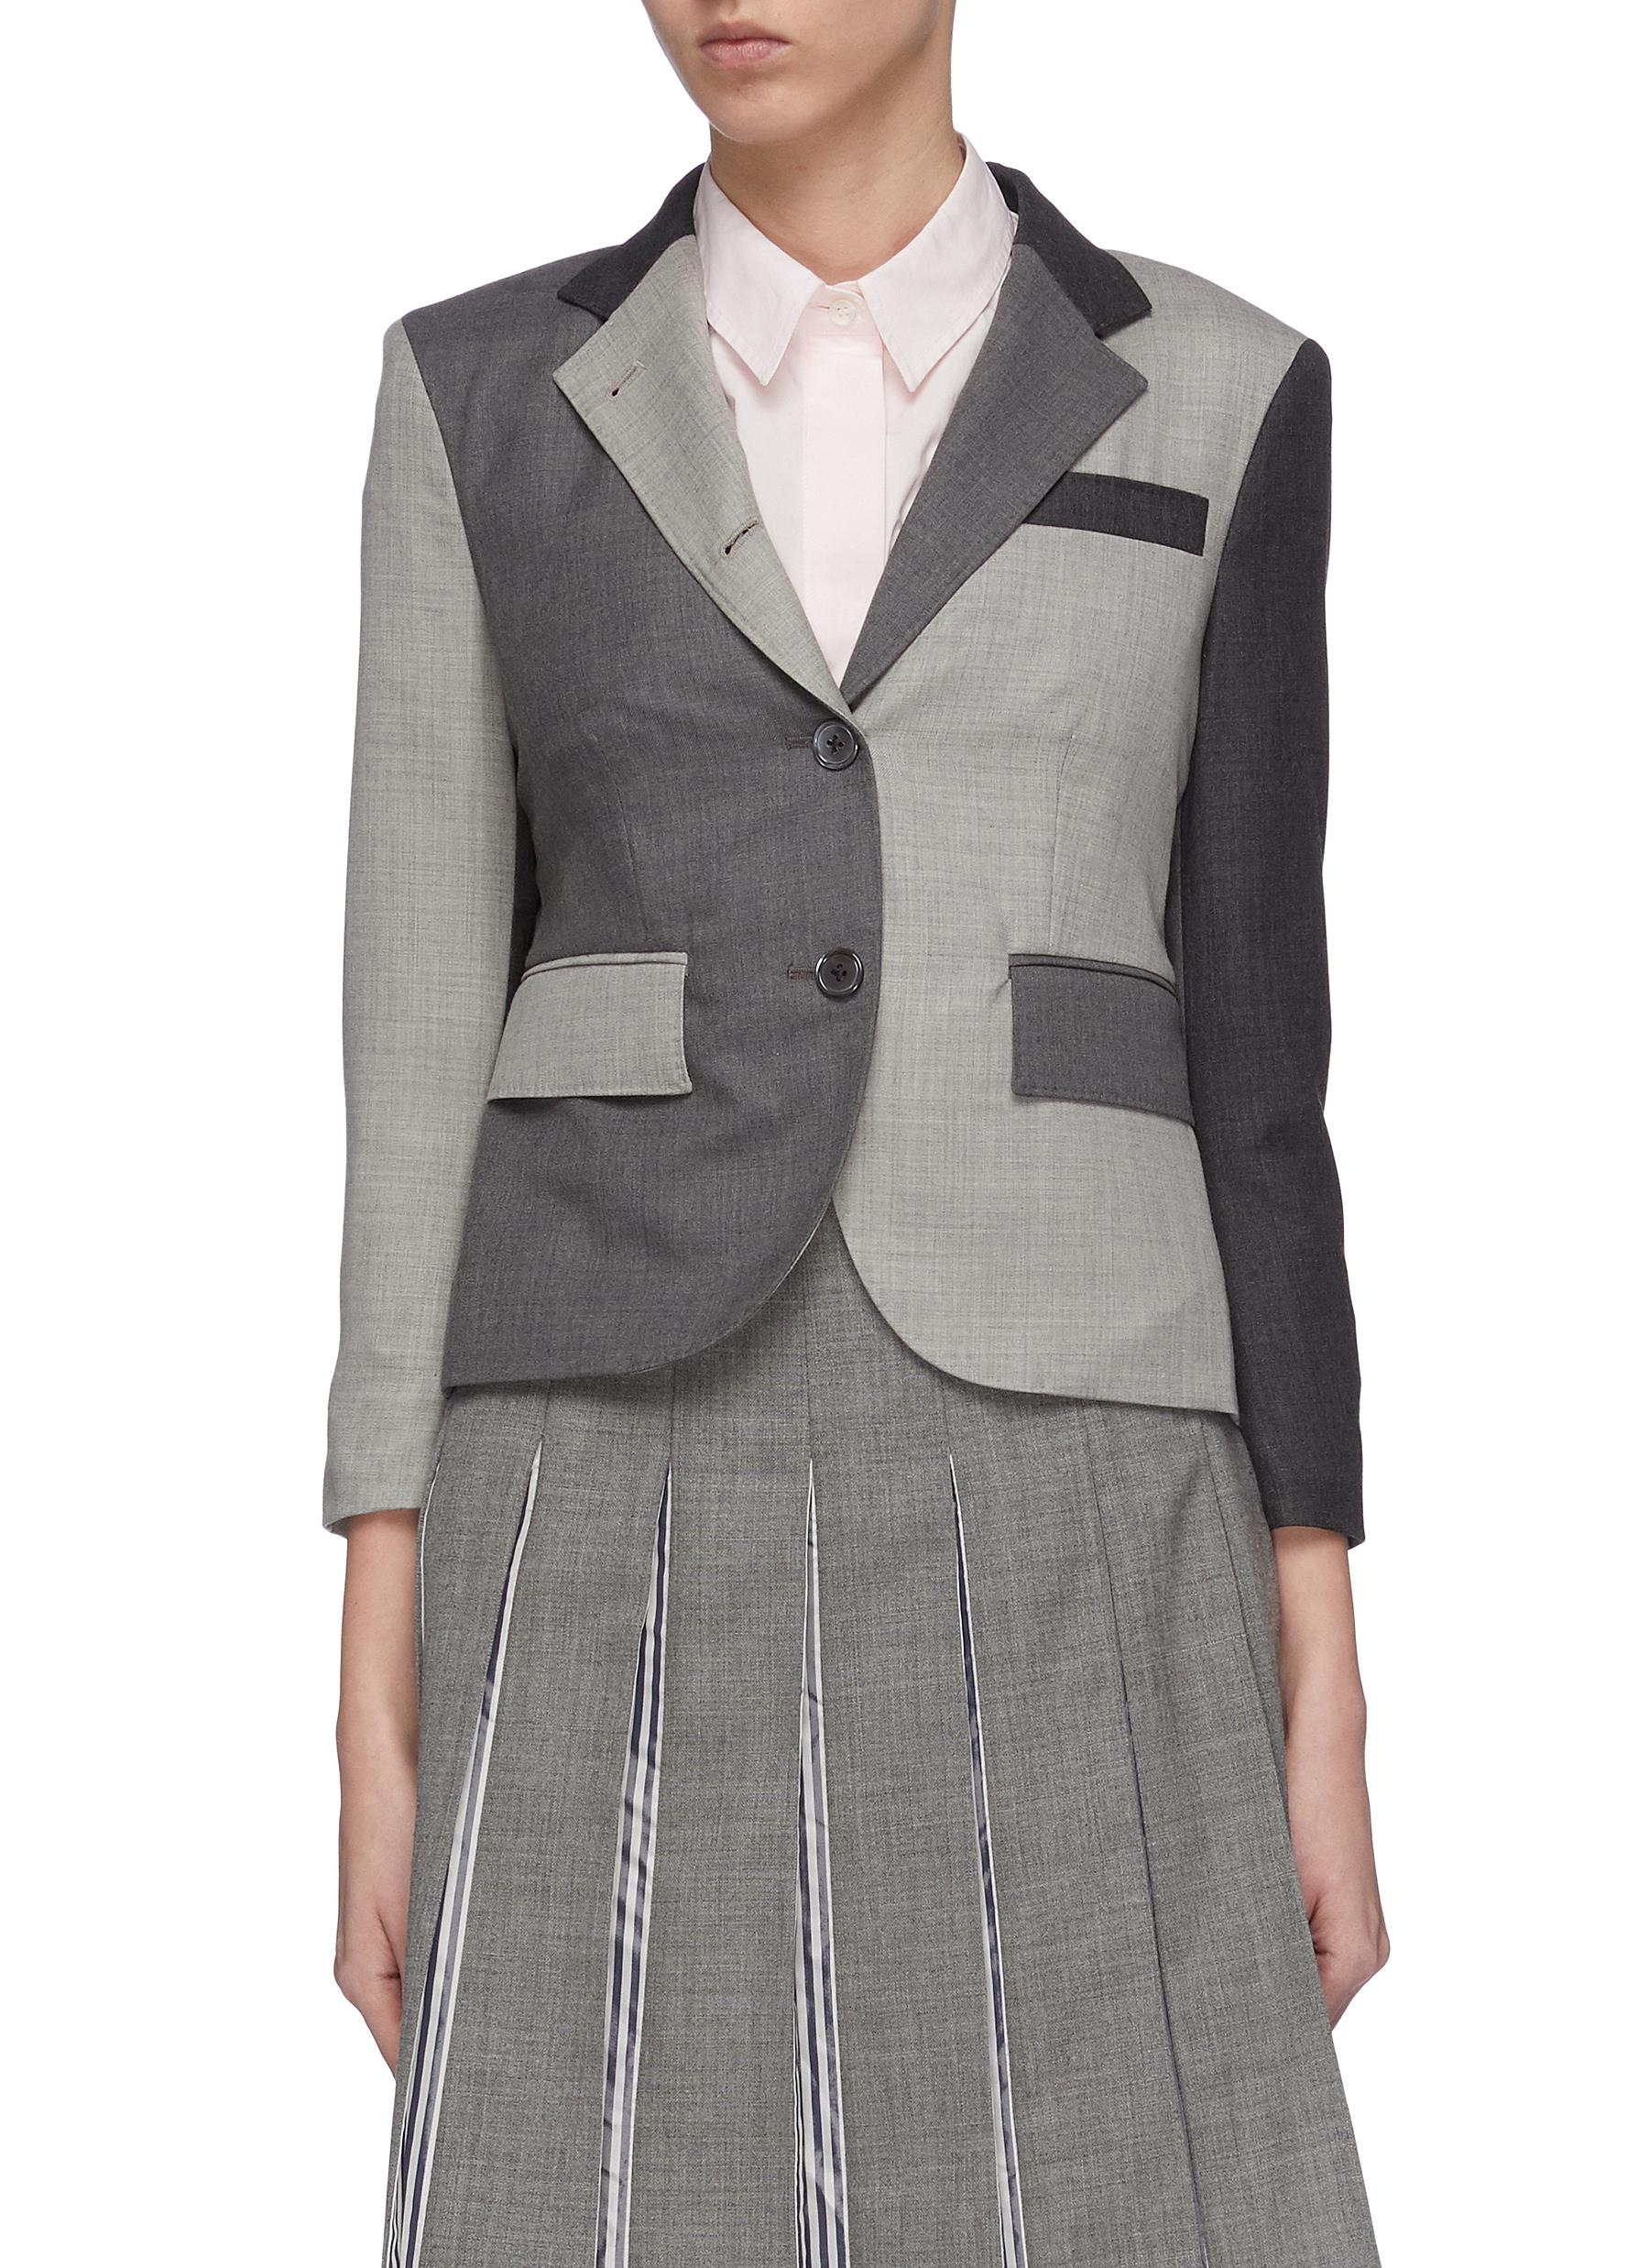 Colourblock panelled twill sport blazer by Thom Browne